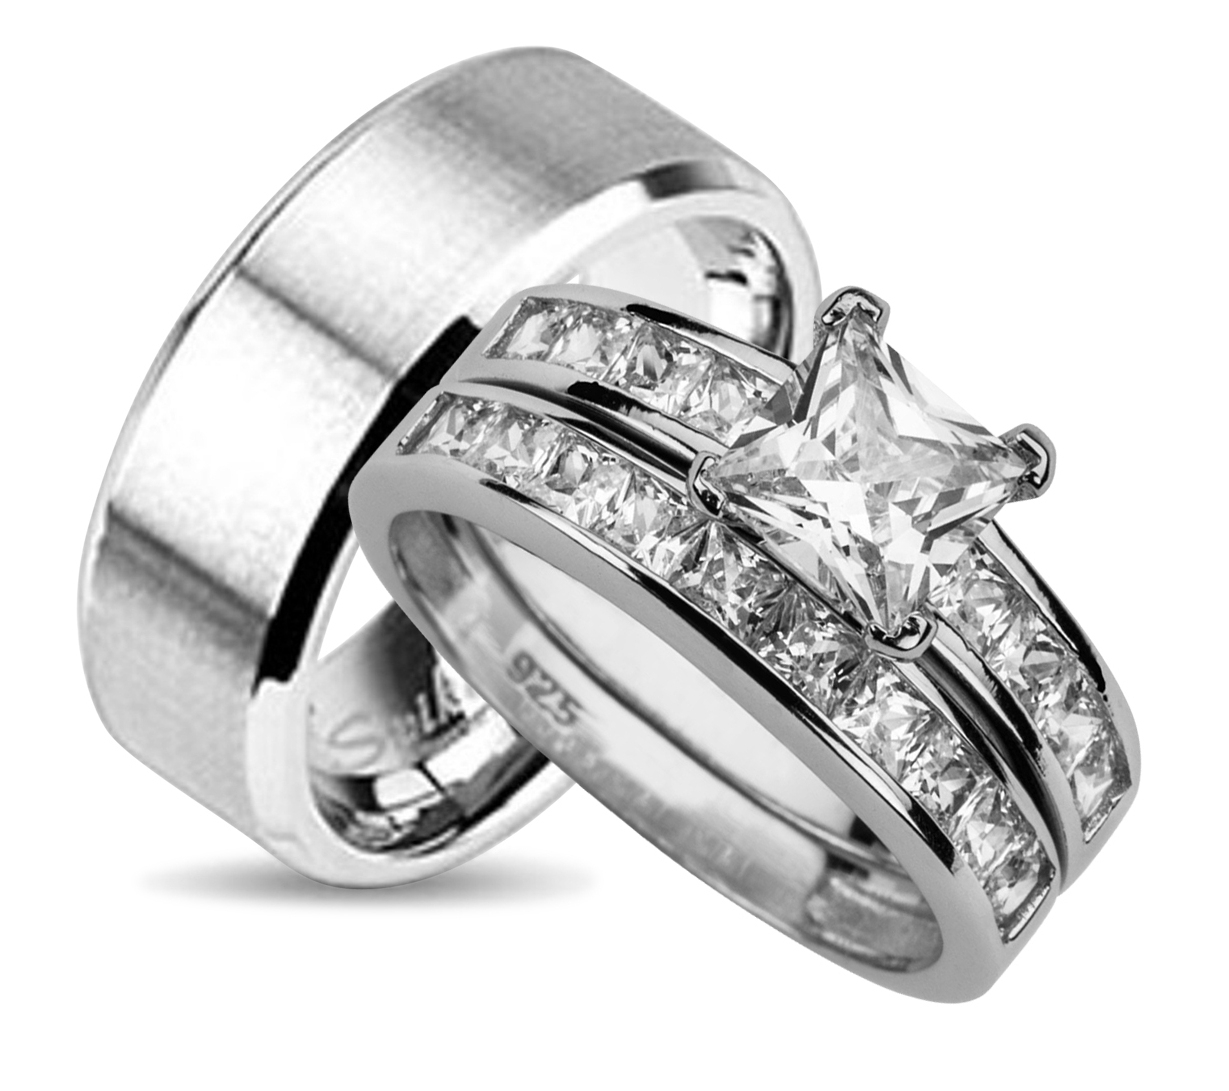 His And Hers Wedding Ring Set Matching Wedding Bands For Him And Her With Regard To Current His And Her Wedding Bands Sets (View 8 of 15)